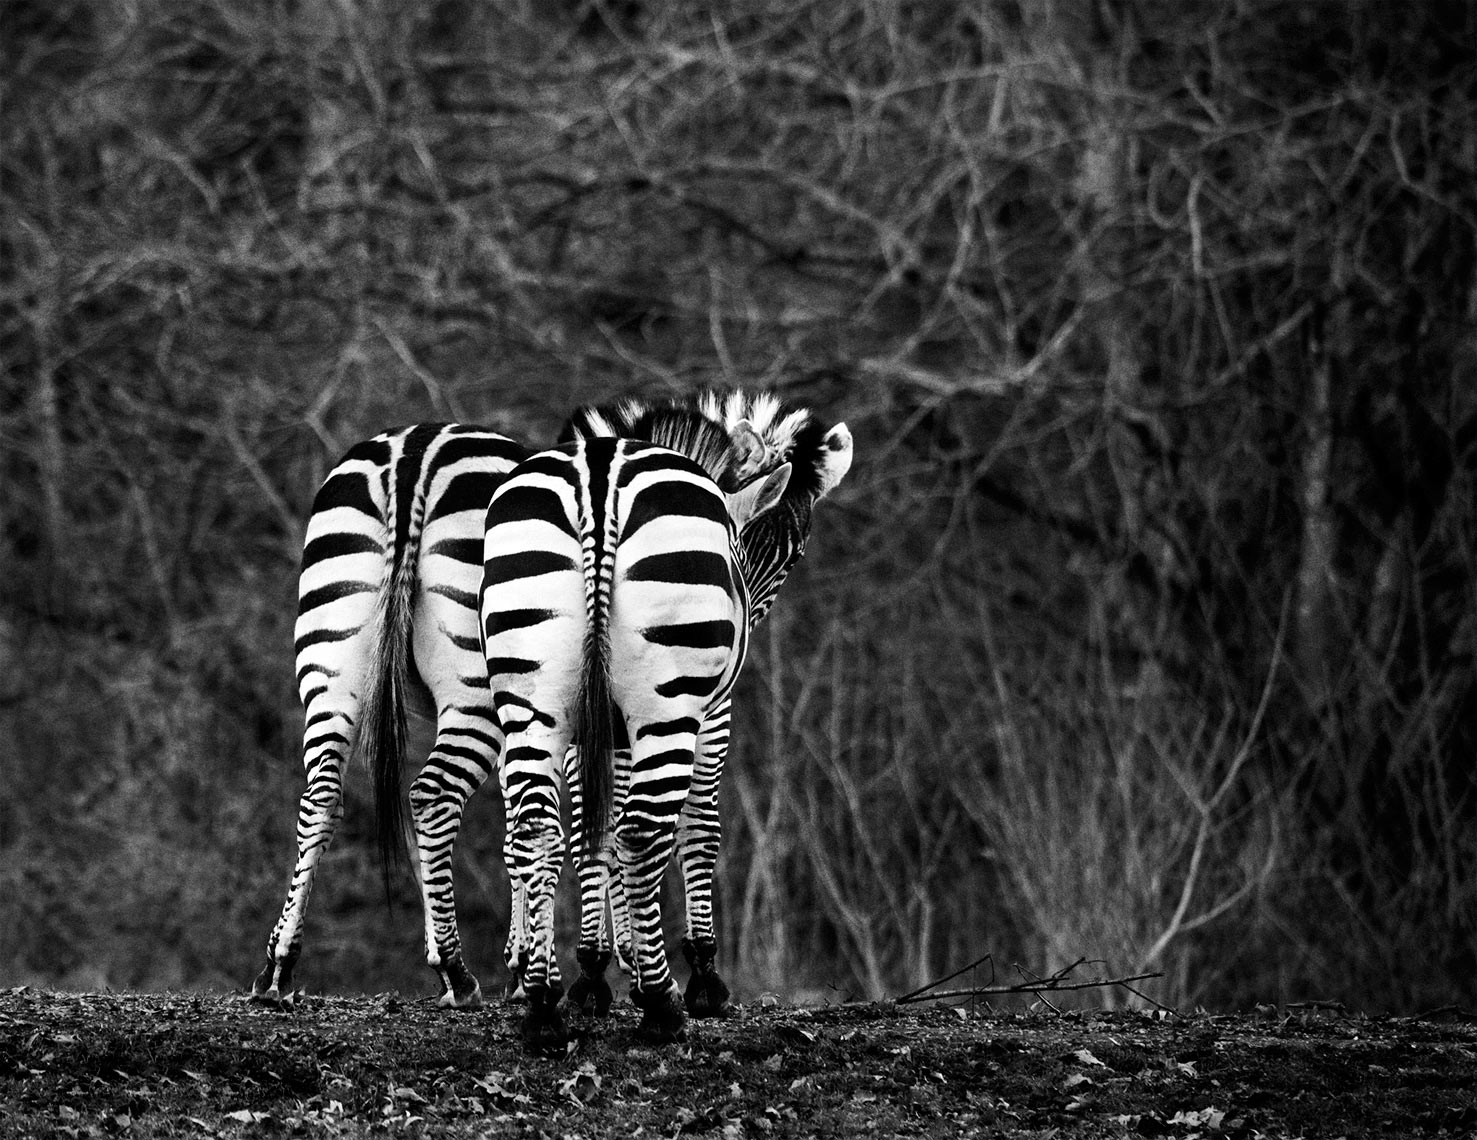 Zebras-in-Woodland-Park-Seattle